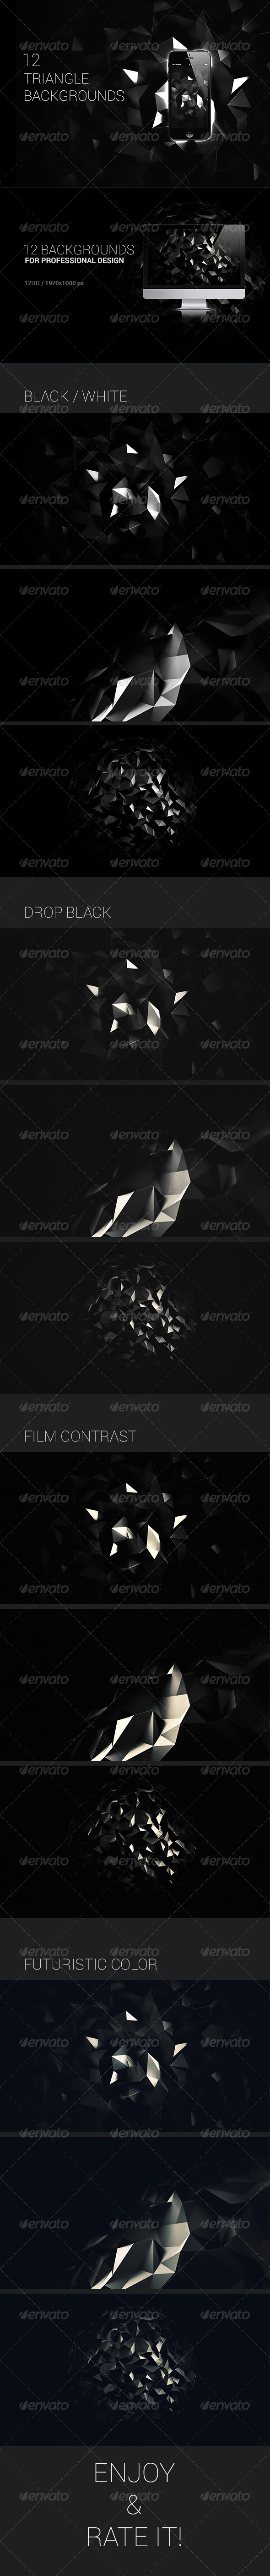 3D Polygon Backgrounds - Abstract Set - Backgrounds Graphics